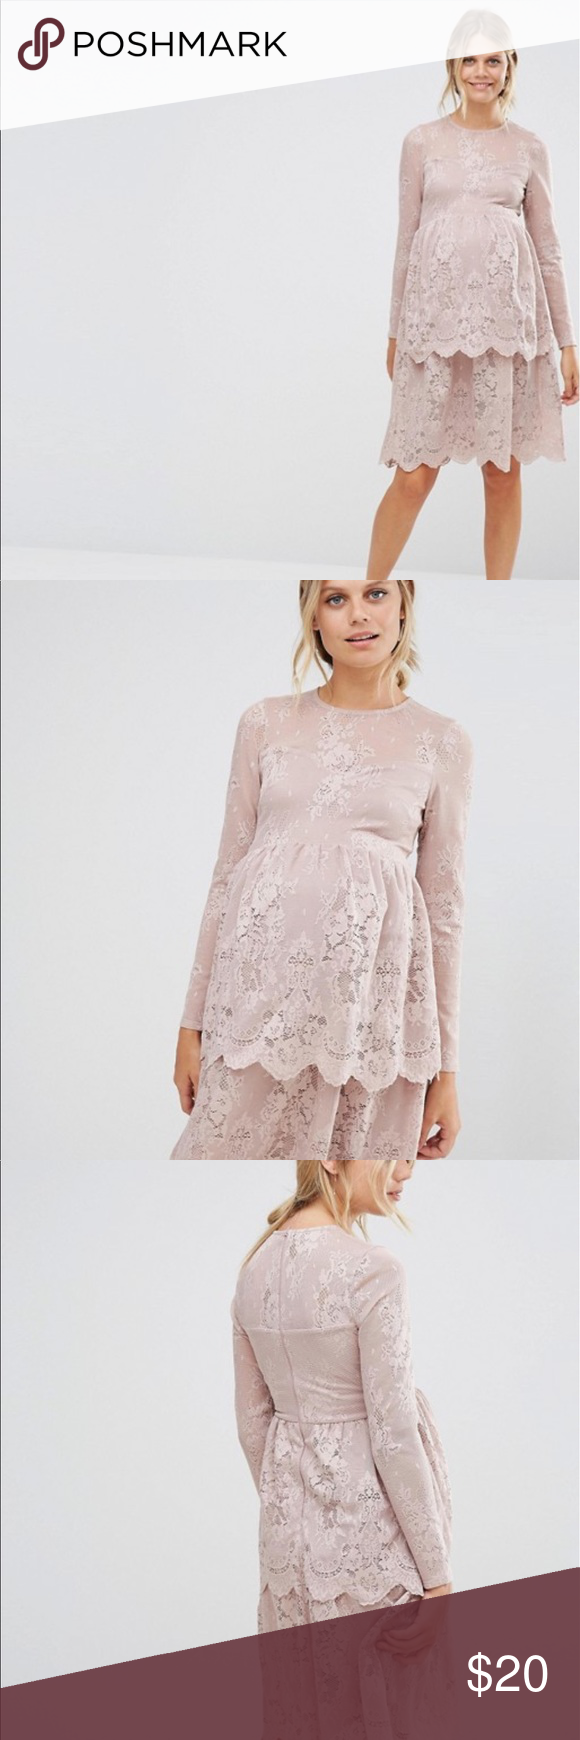 Nwt asos lace maternity dress lightly worn no flaws size 12 asos nwt asos lace maternity dress lightly worn no flaws size 12 asos maternity dresses ombrellifo Images